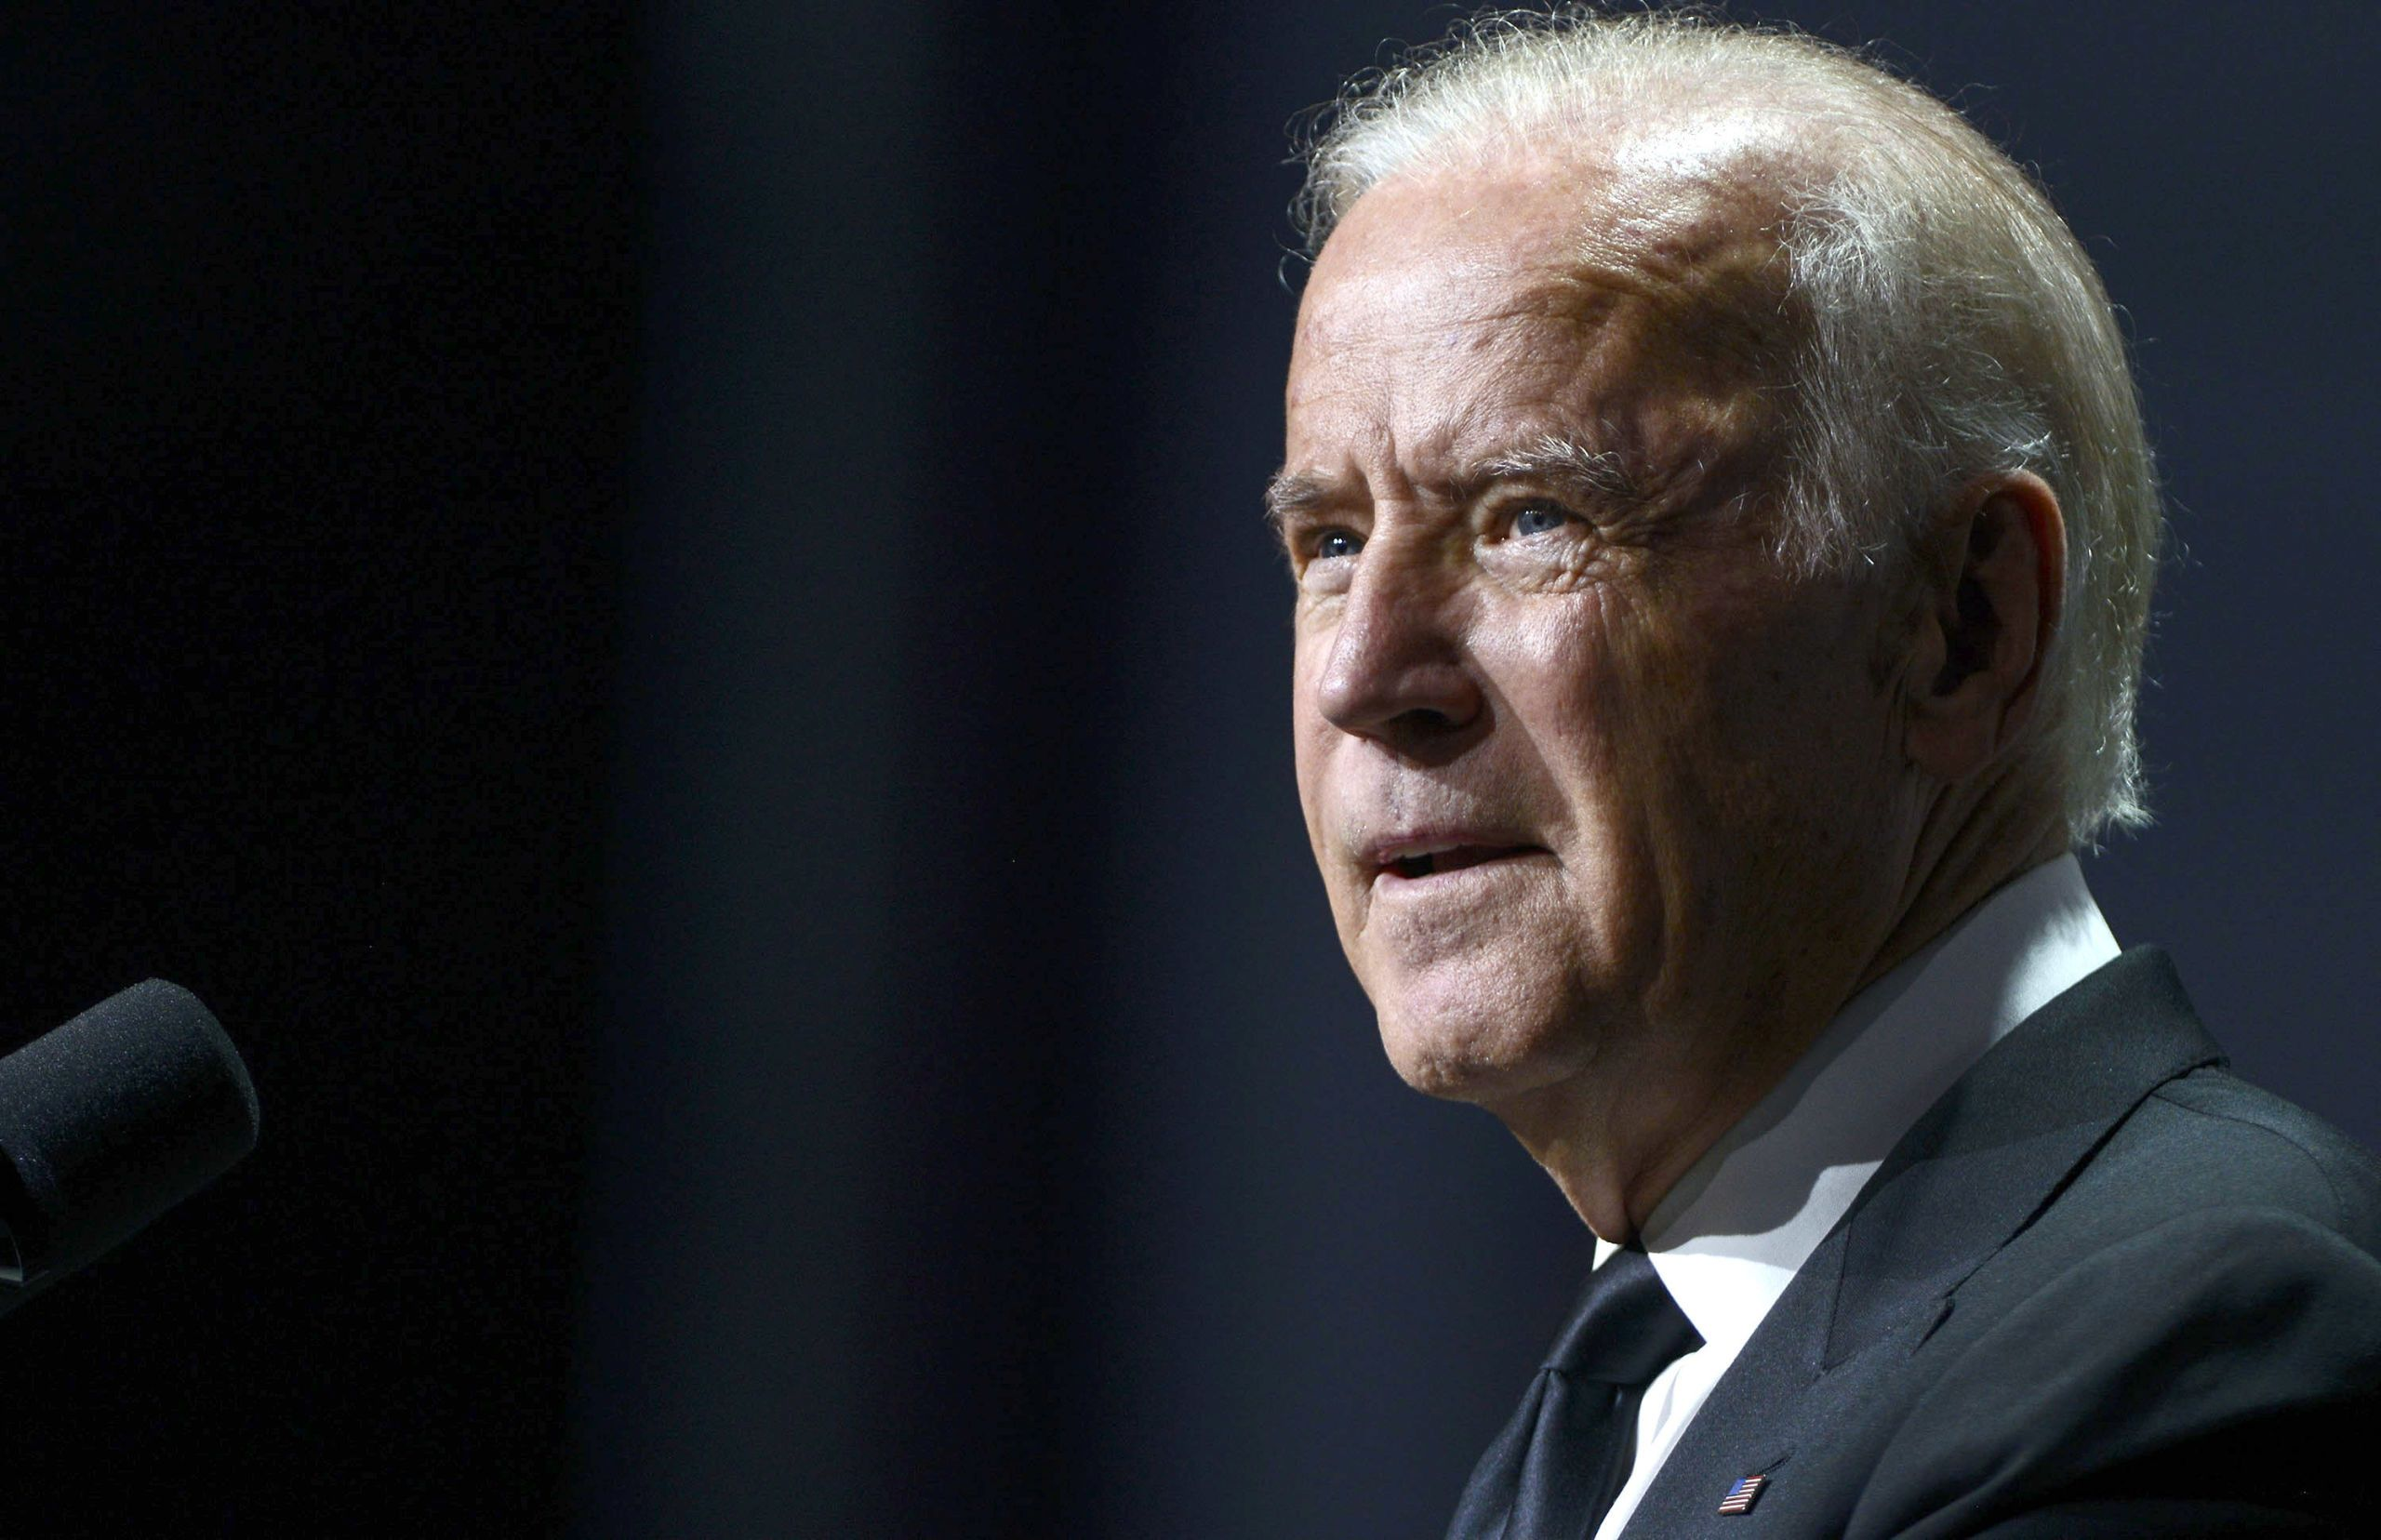 2020 Spotlight: Joe Biden